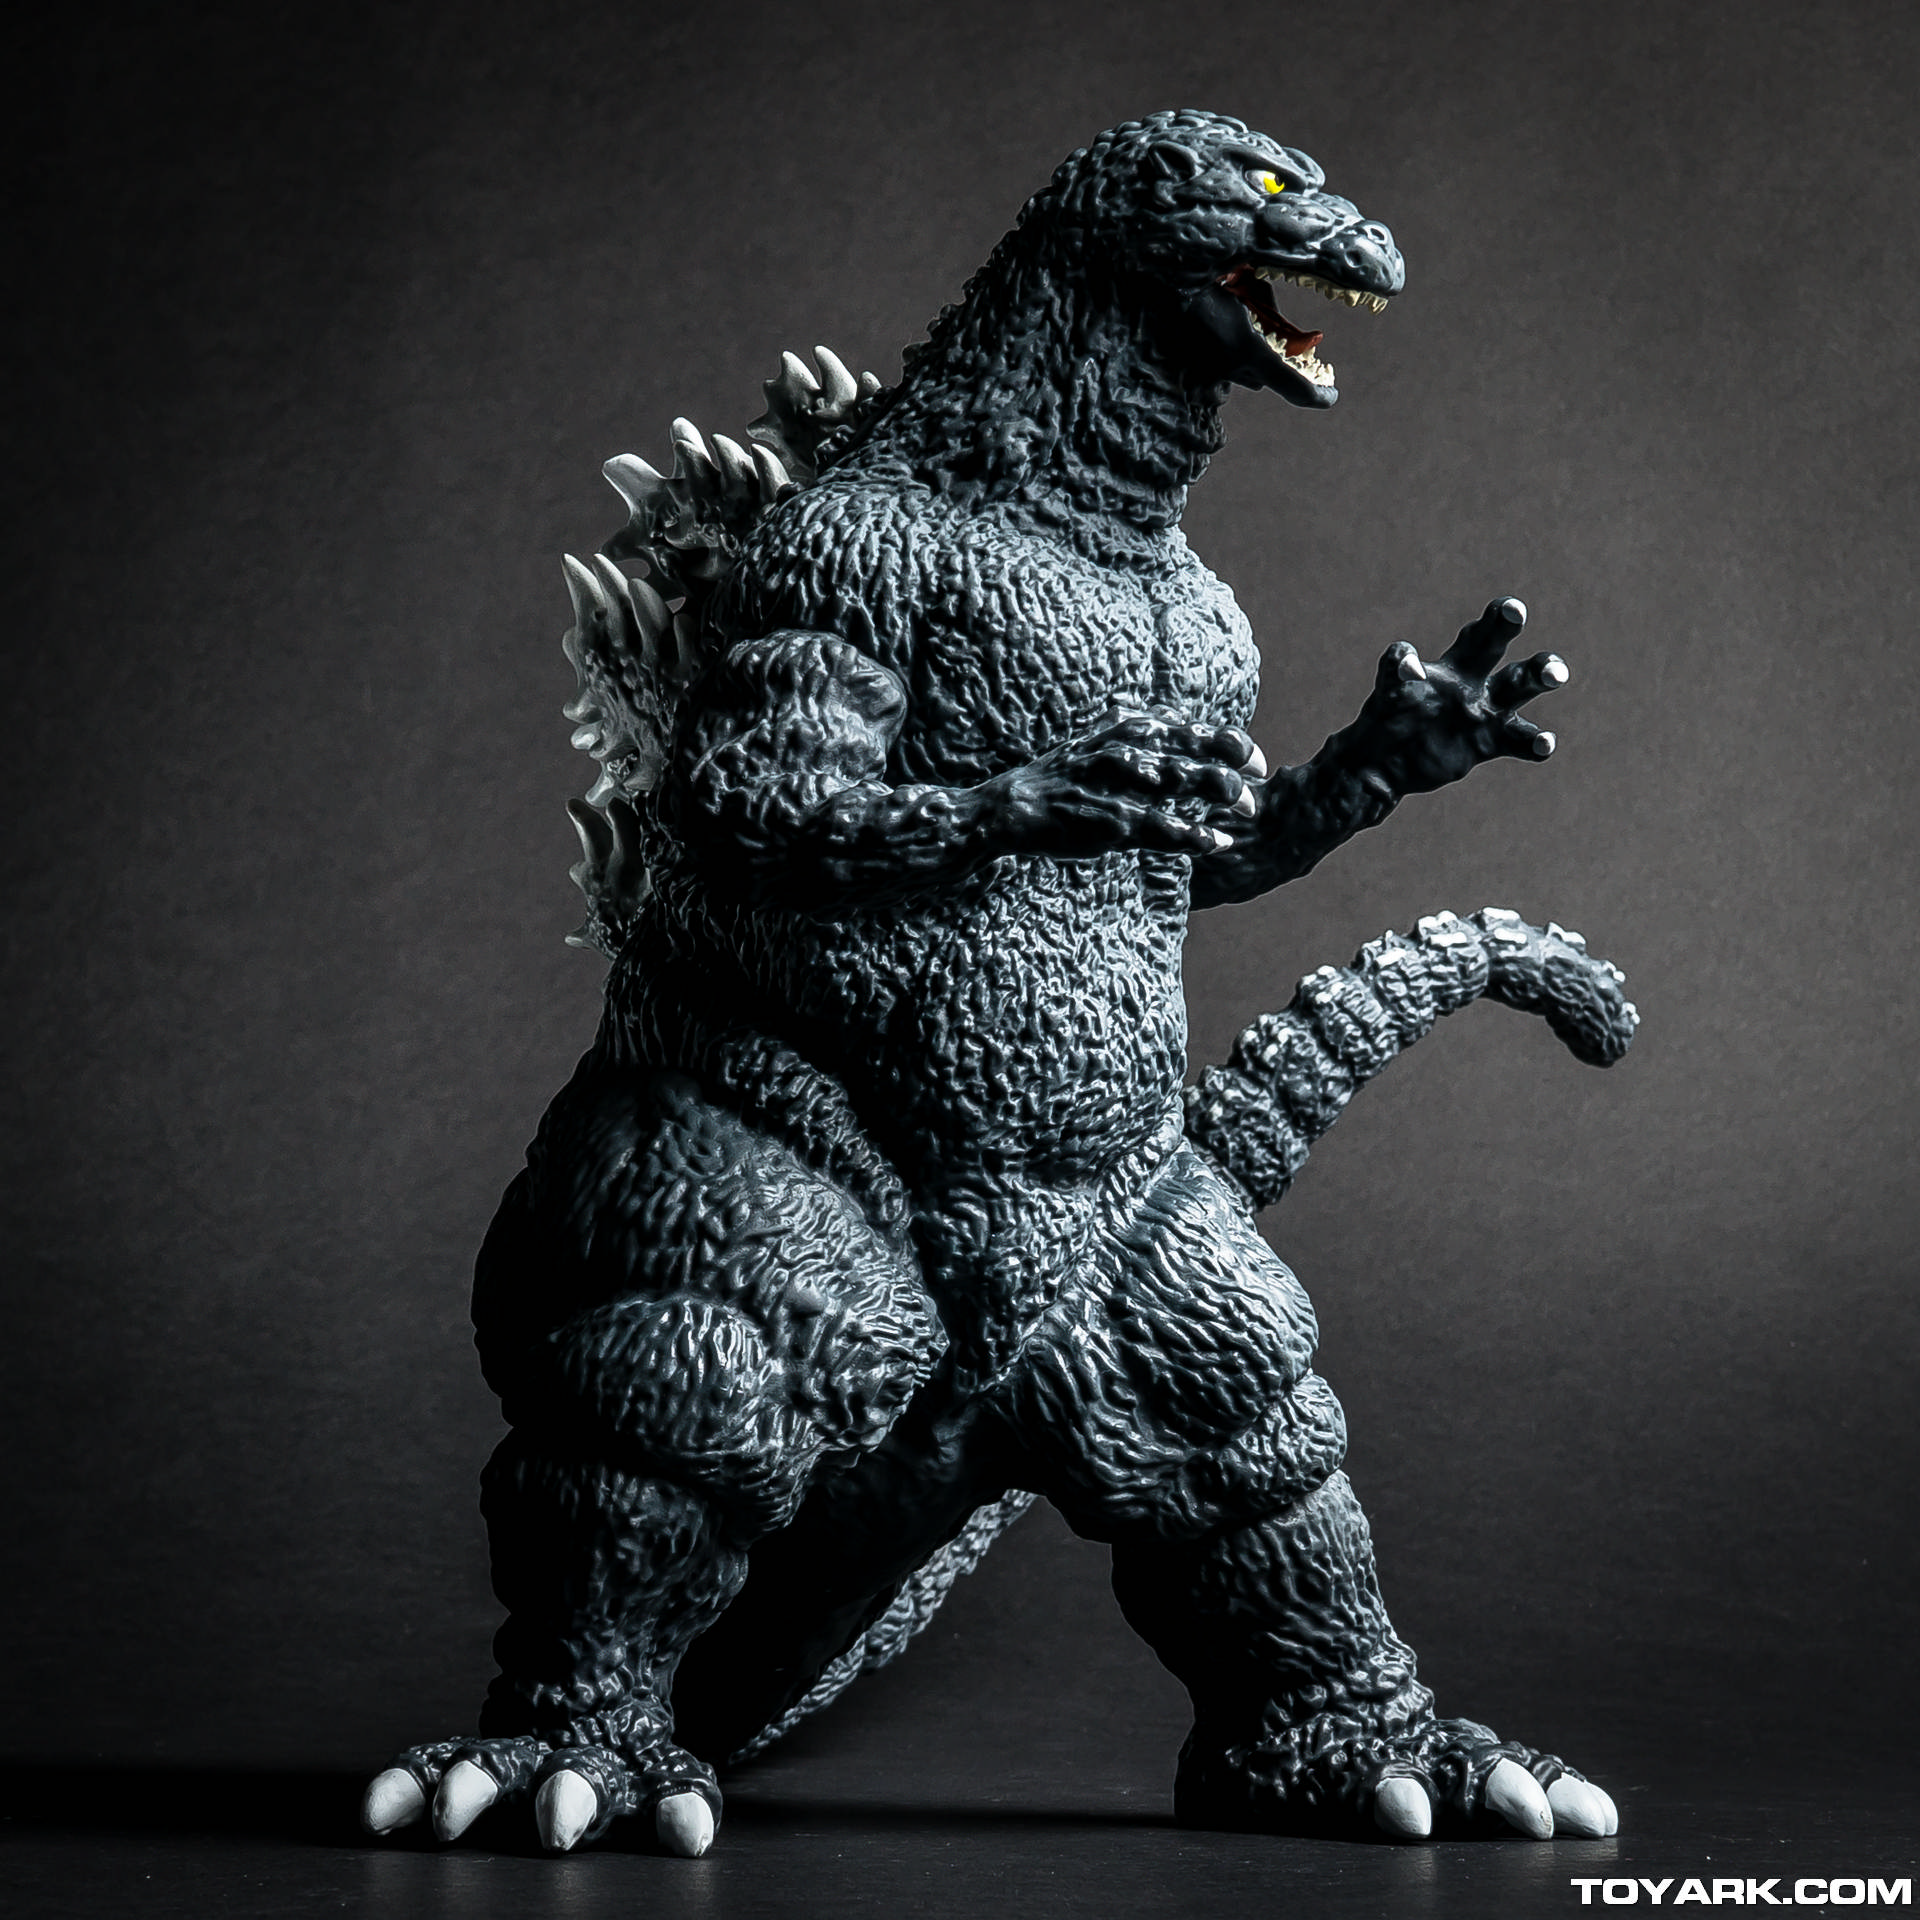 Godzilla Is Ready For Action.